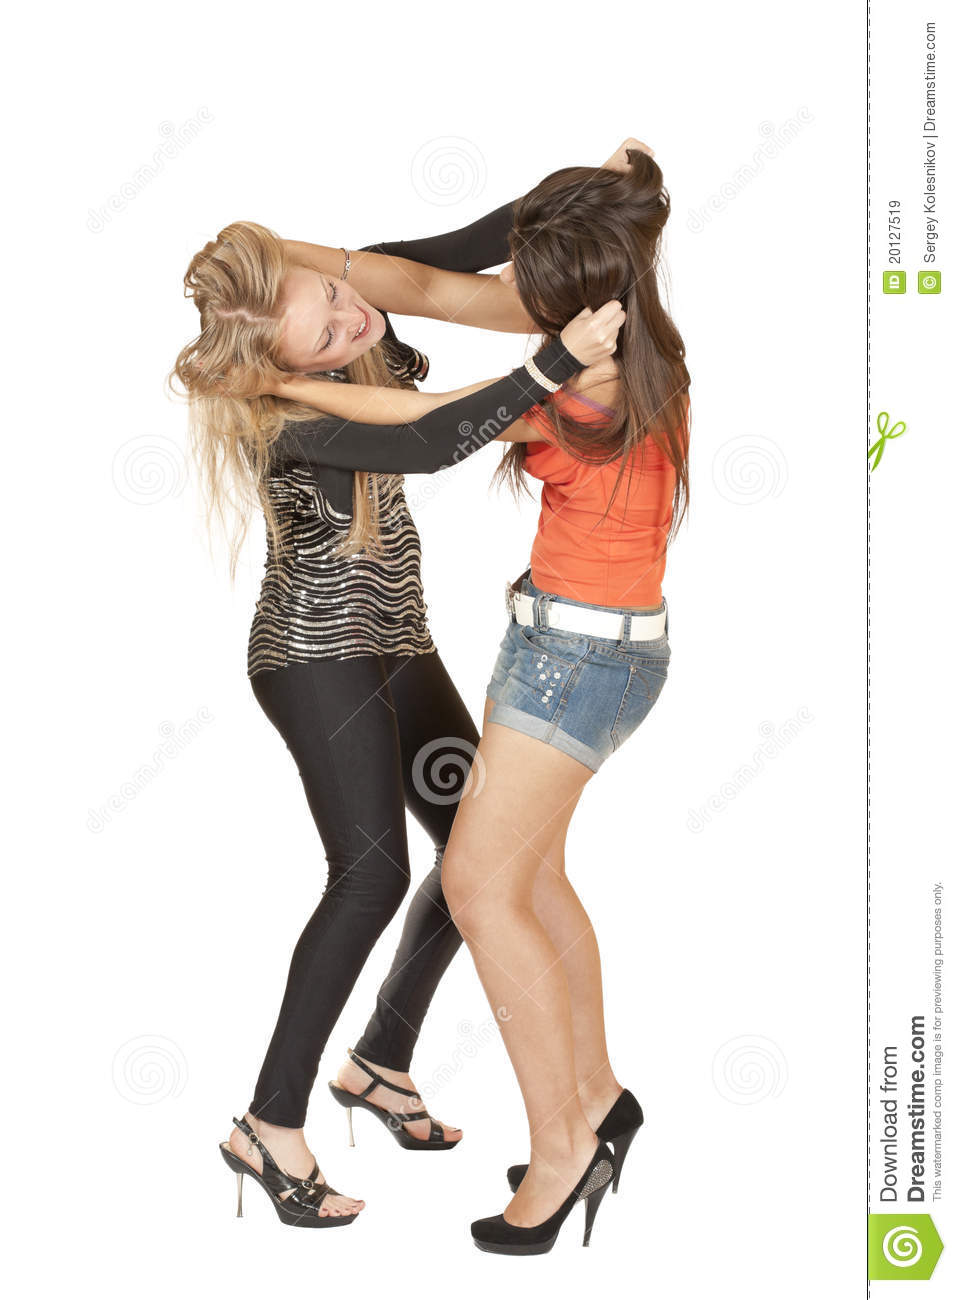 from Fletcher two hot nude girls fighting